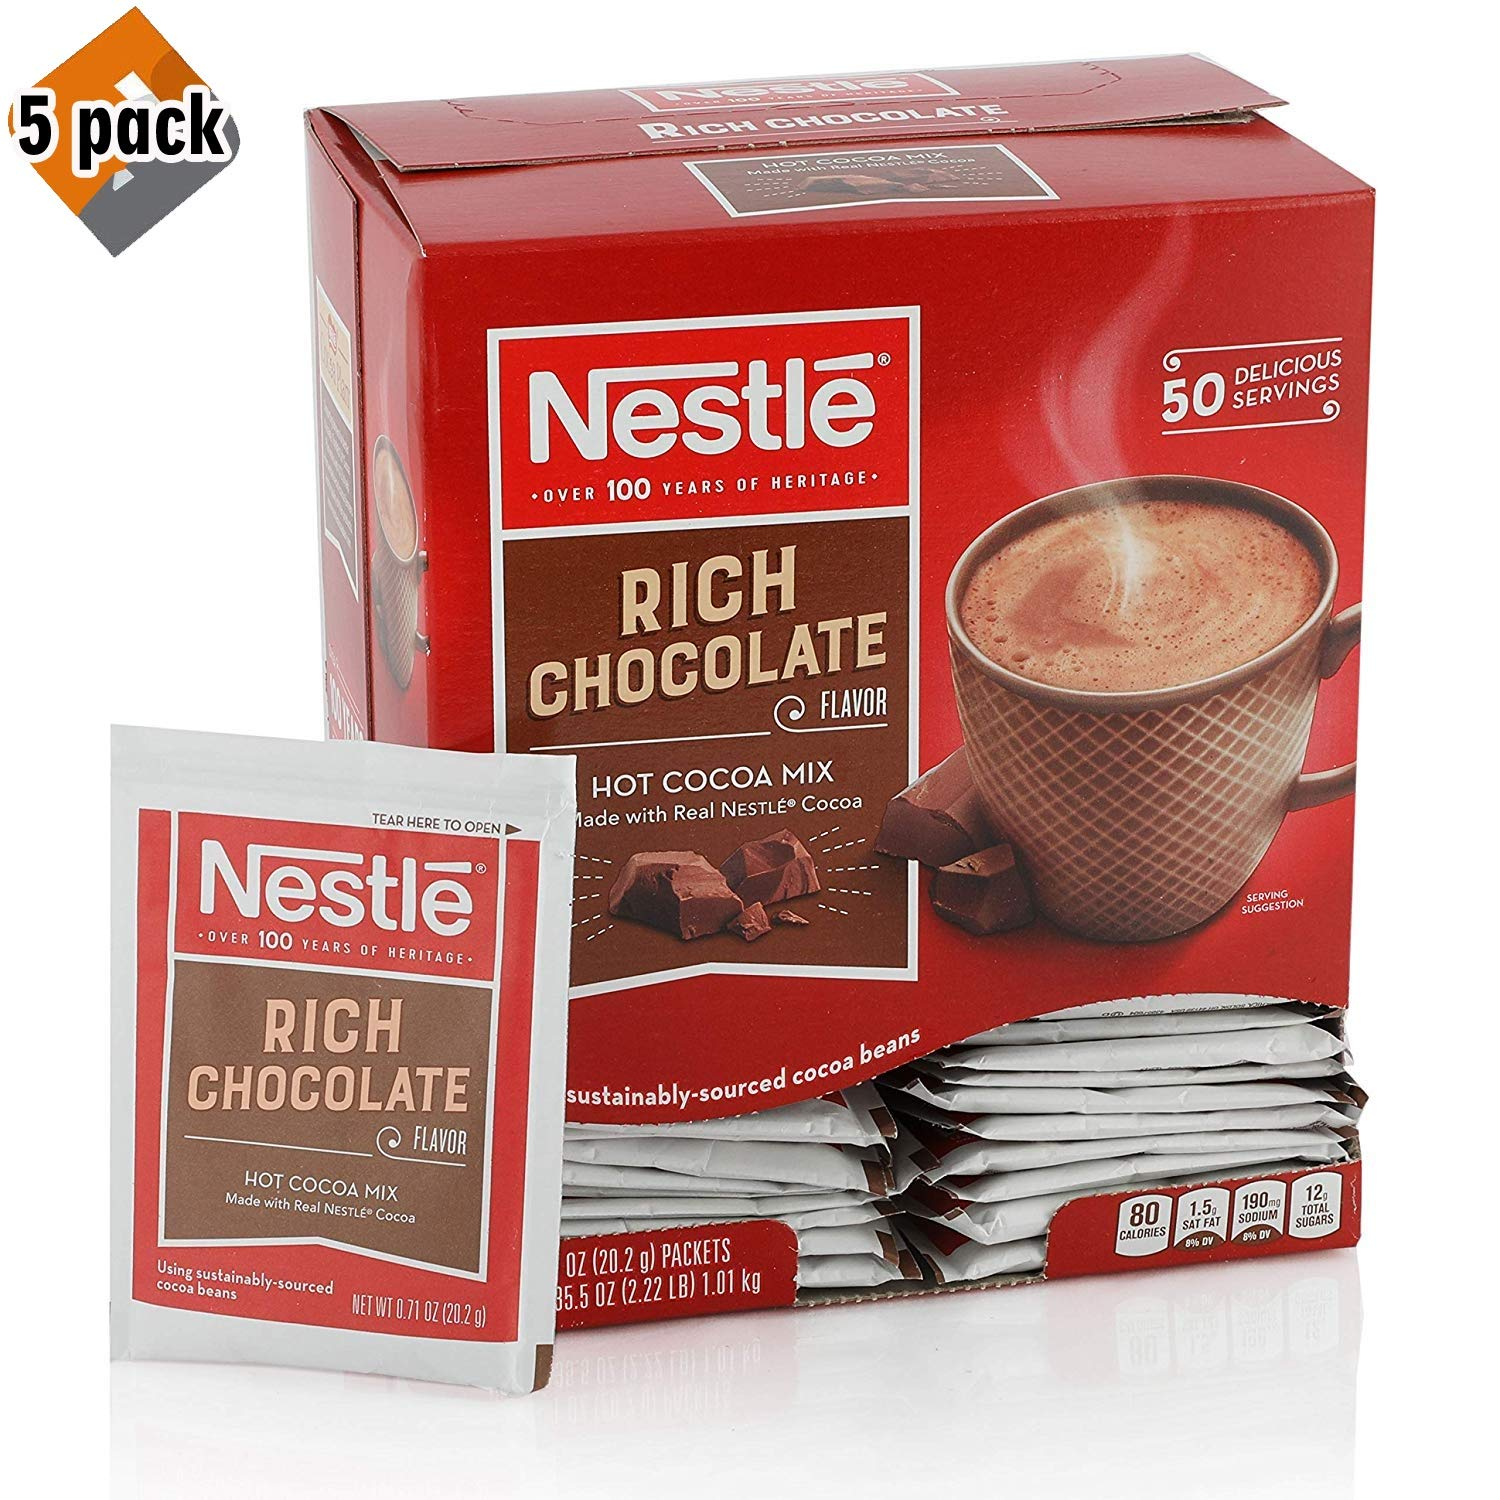 Nestle Hot Chocolate Mix, Hot Cocoa, Rich Chocolate Flavor, Made with Real Cocoa, 50 Count - 5 Pack by Nestle Hot Cocoa